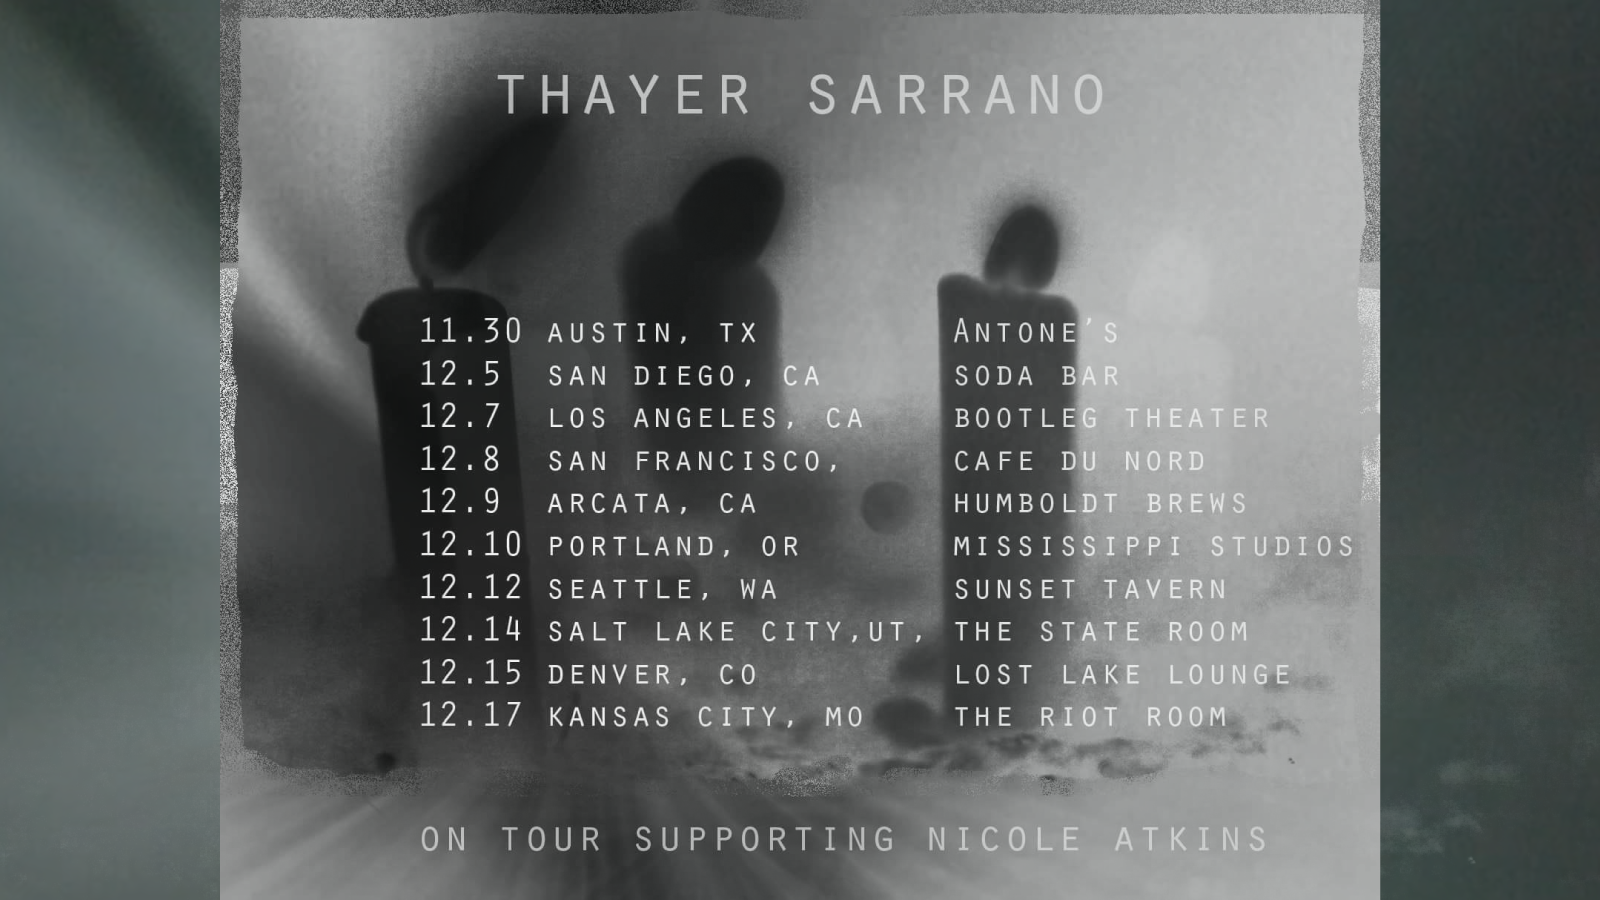 Thayer Sarrano - The Tour of the West (2017)